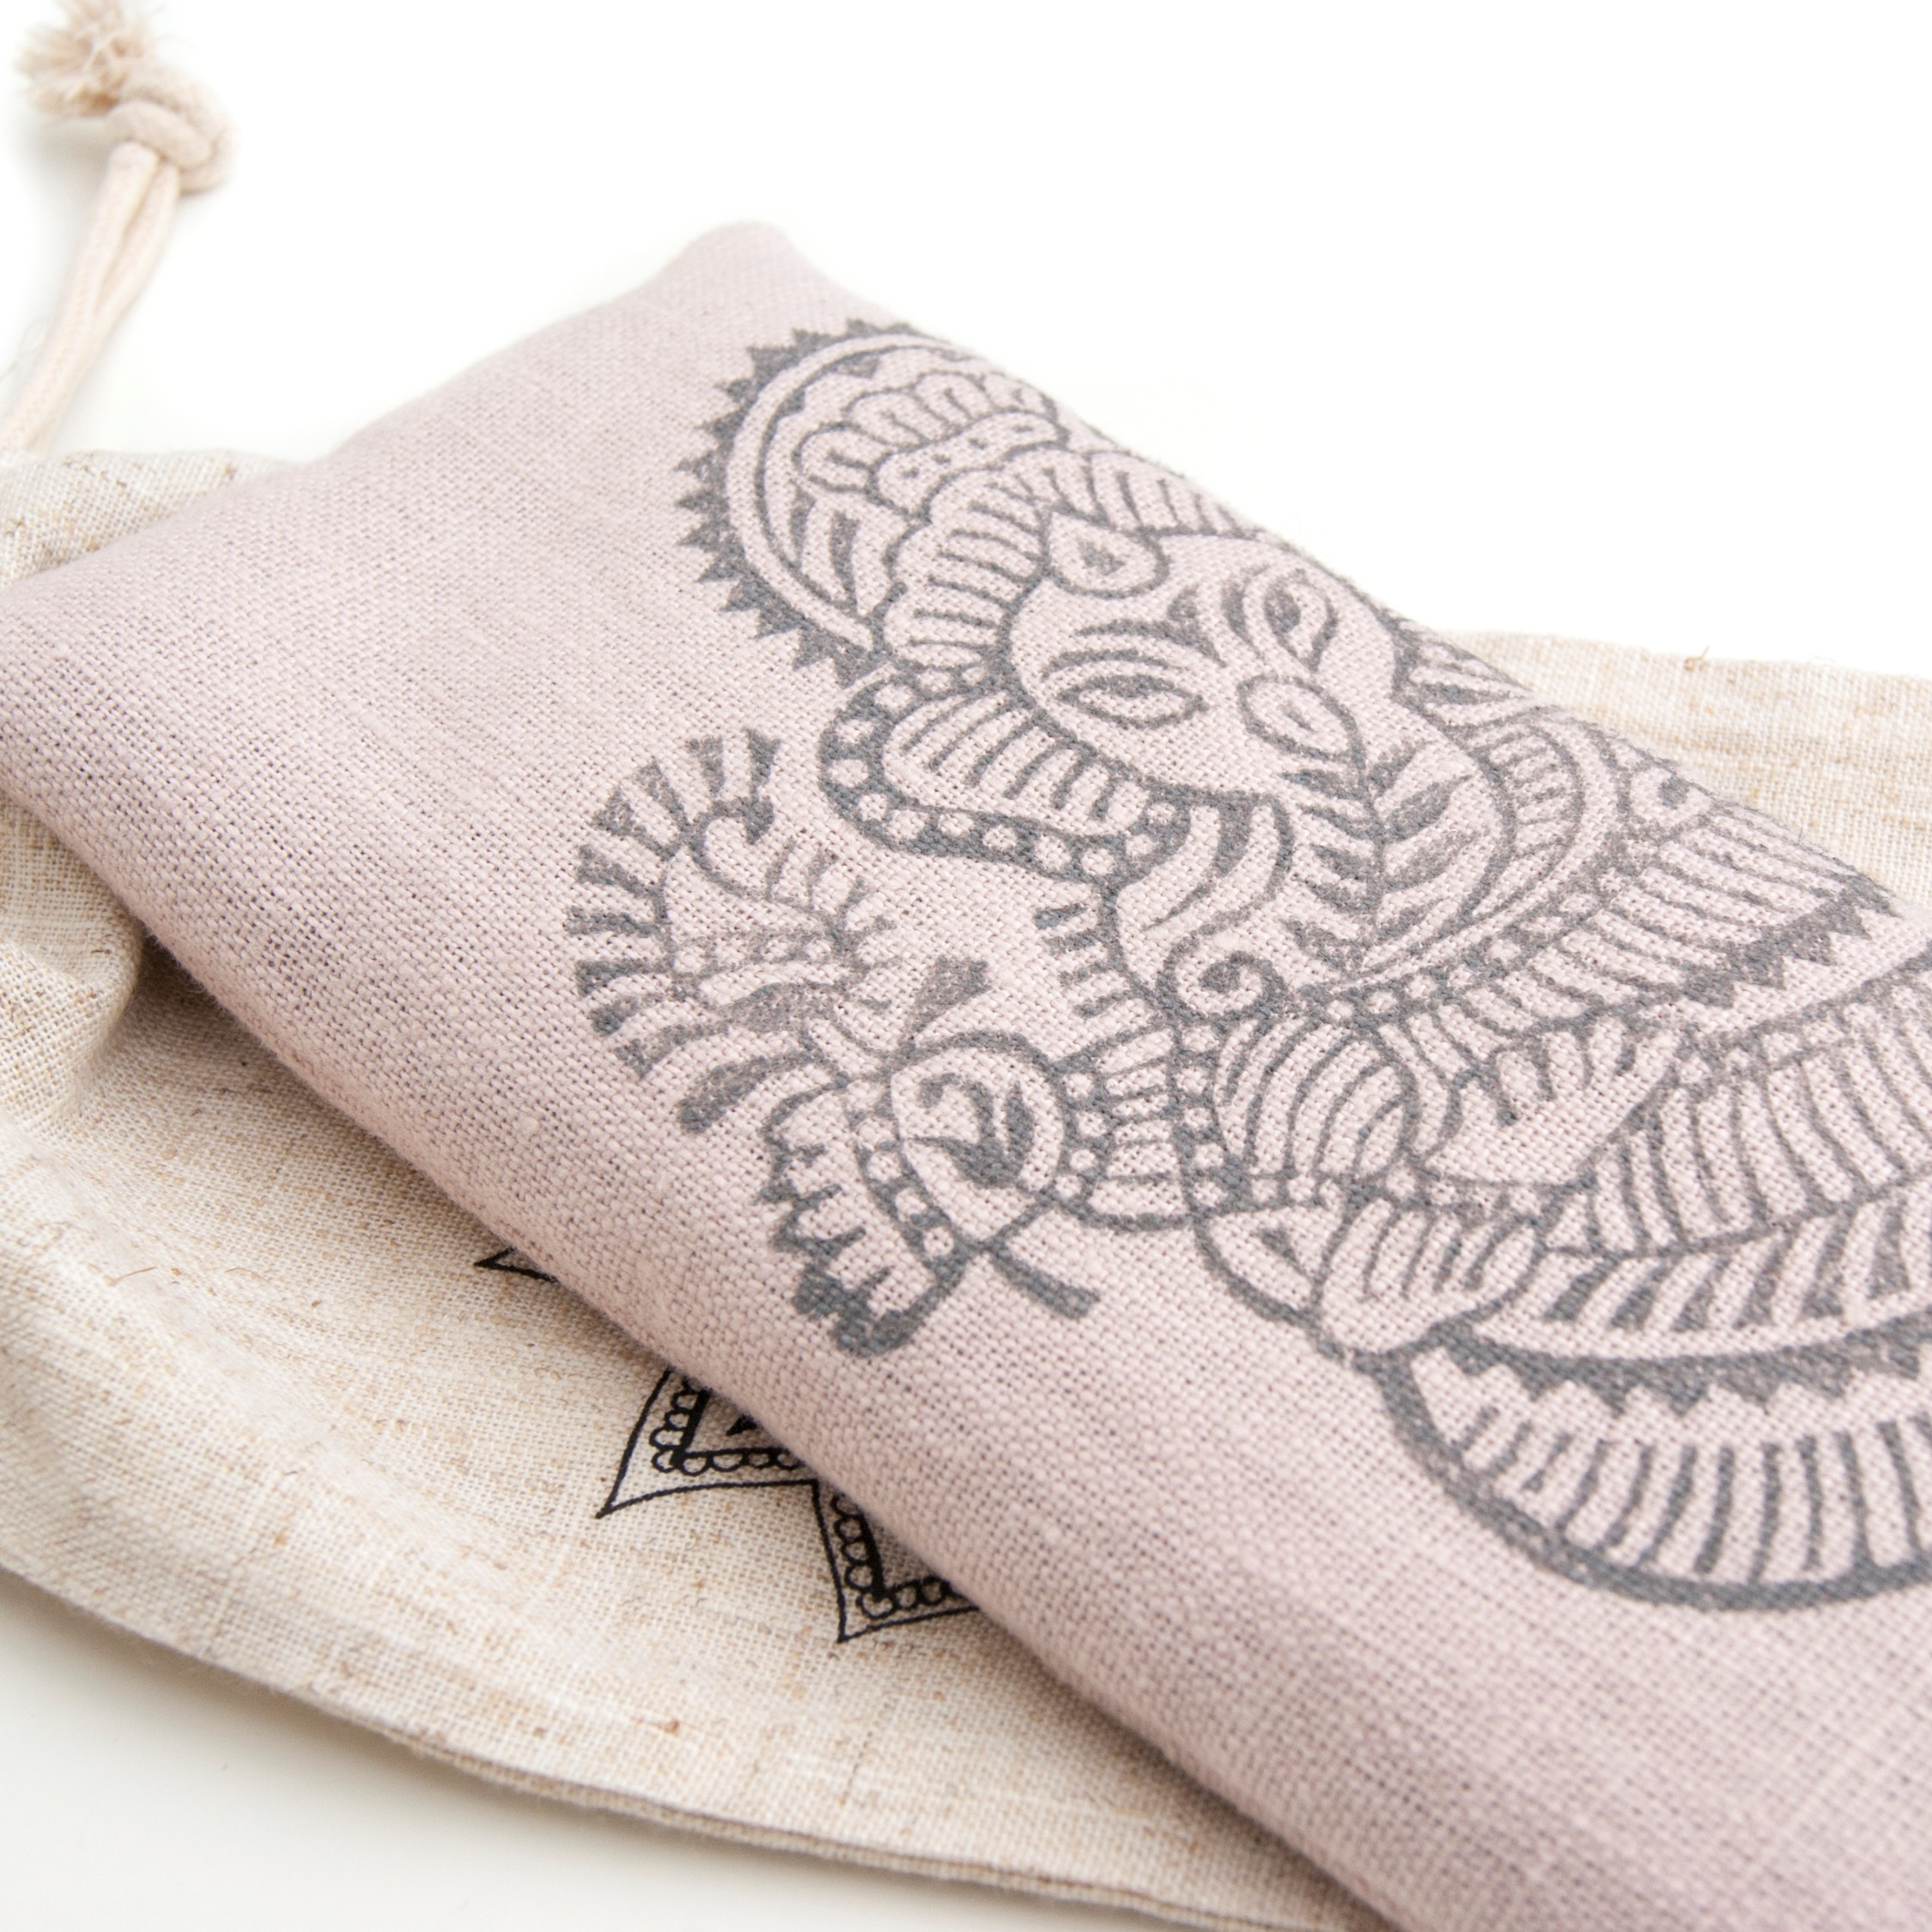 Ganesh eye pillow in pink,100% flax linen